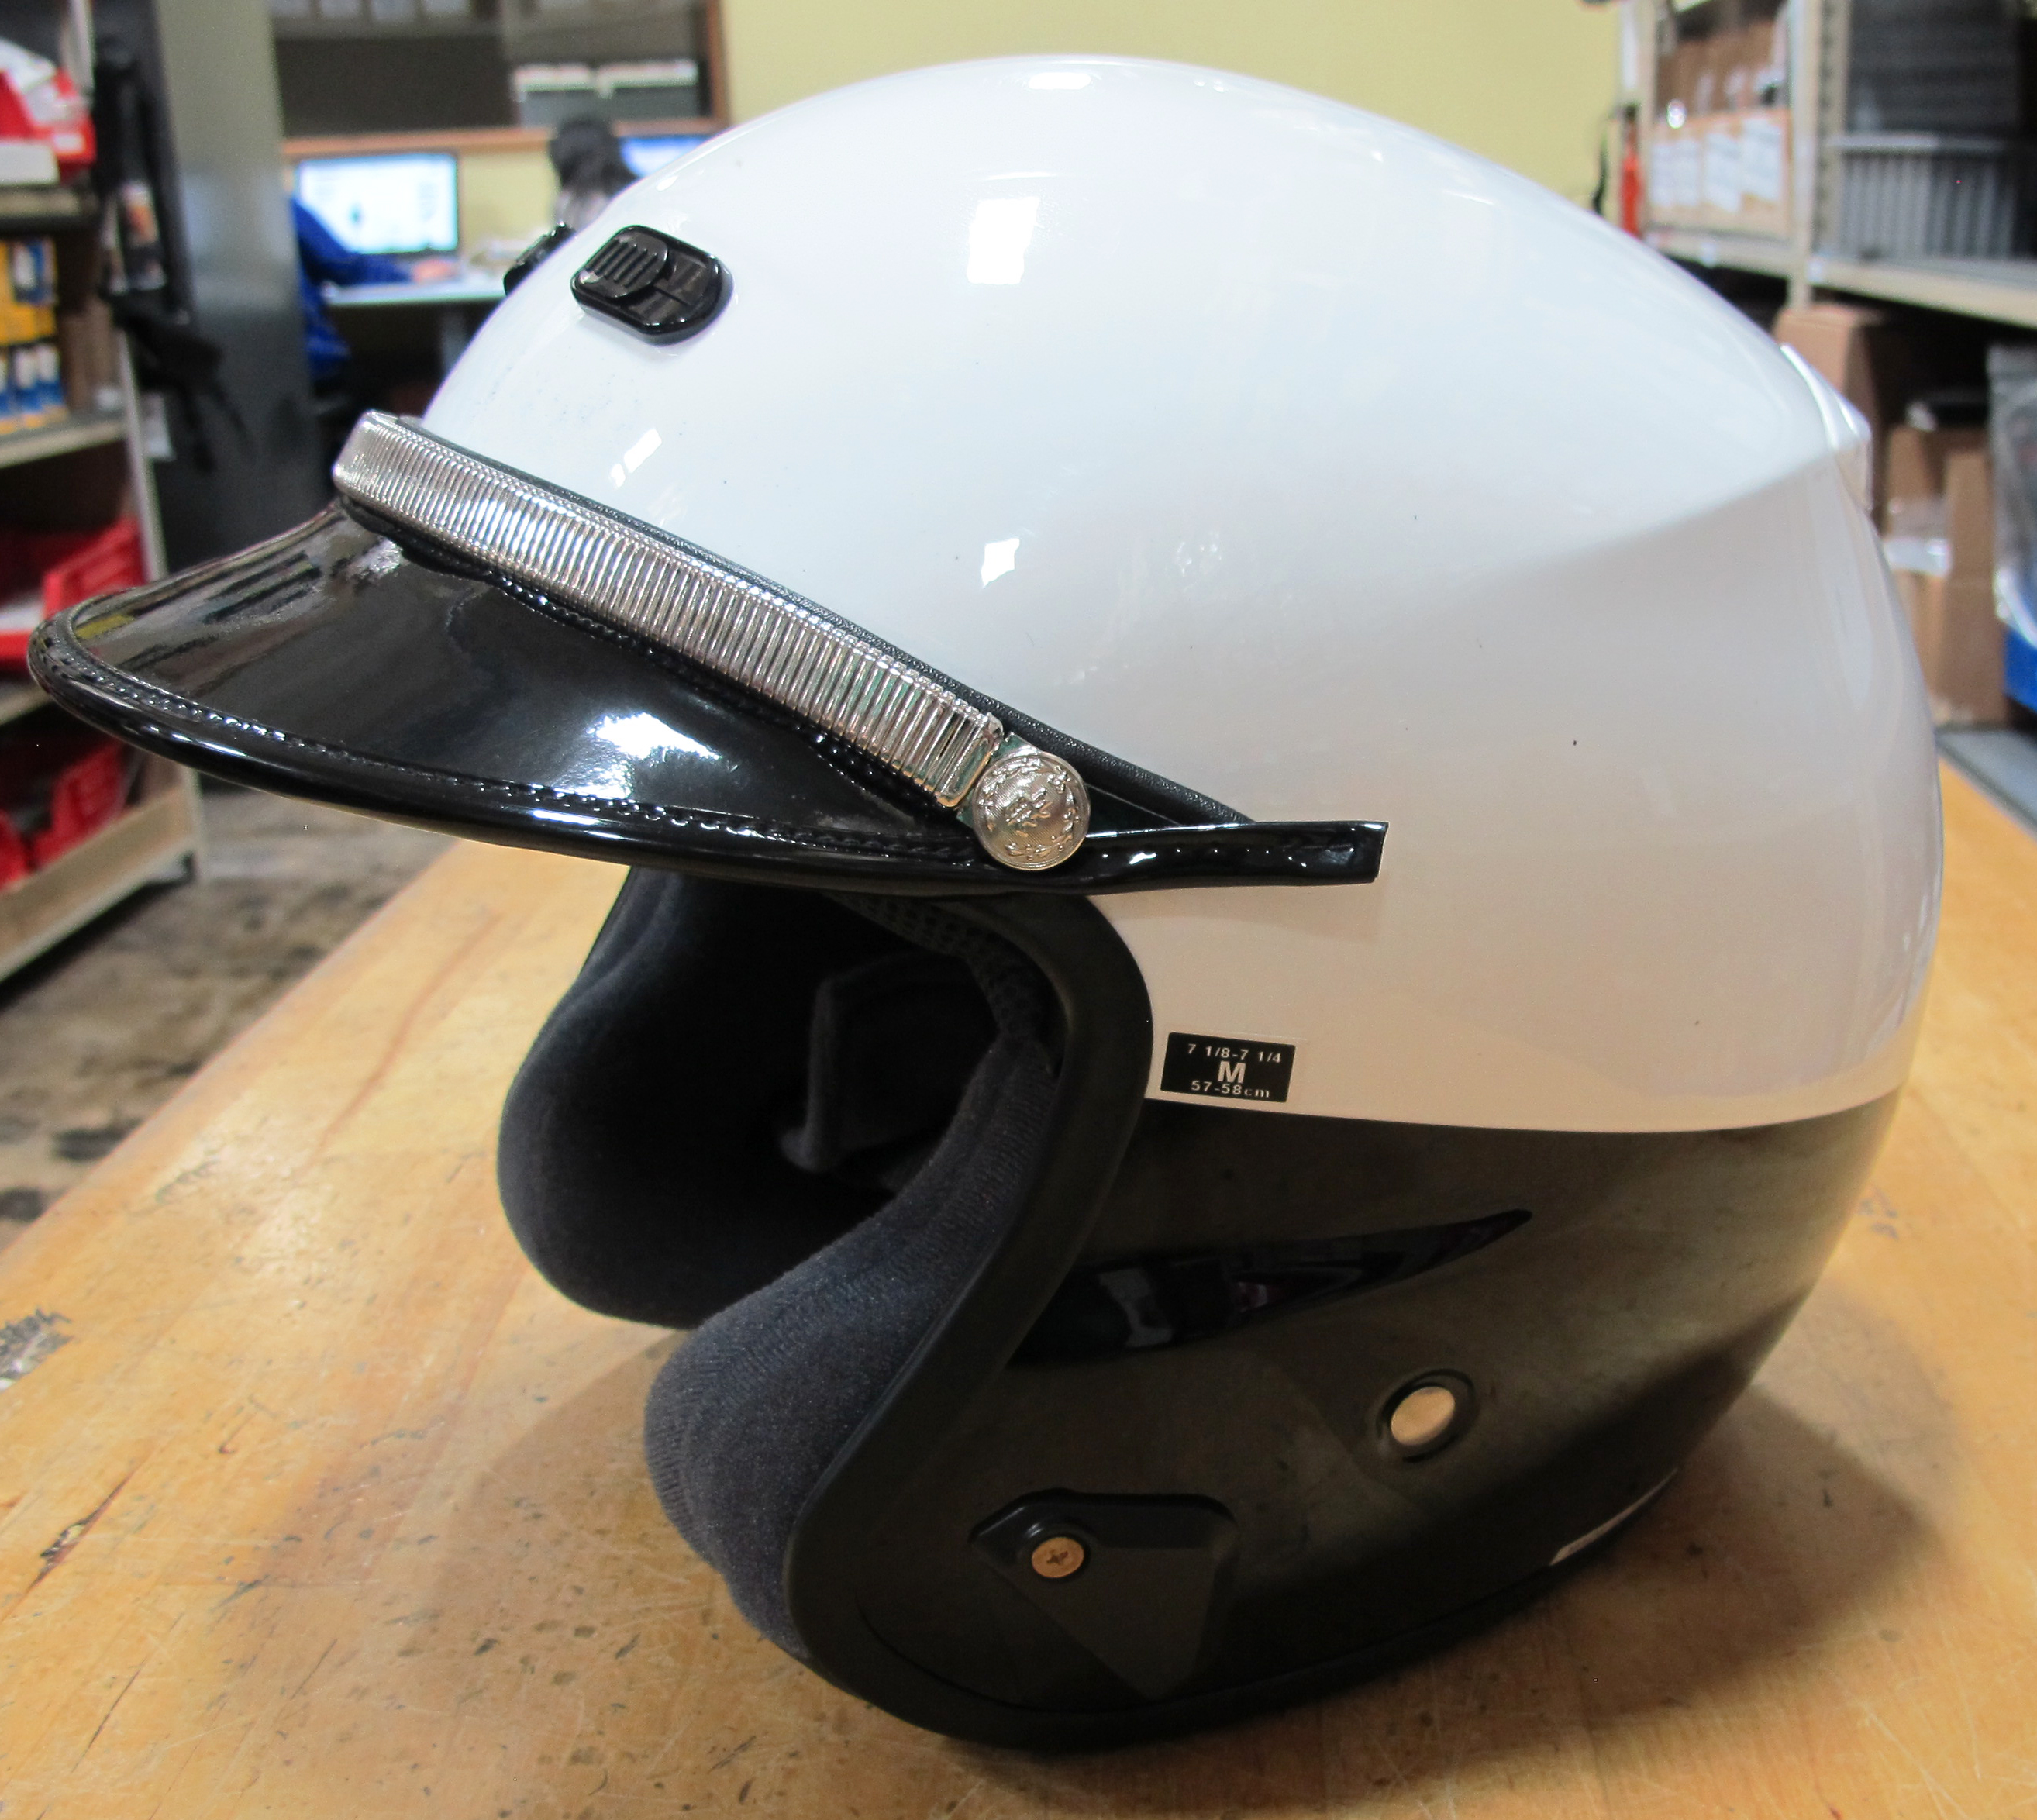 Shoei RJ Platinum LE Open Face Police Helmet BlackWhite  : img0862 Police Motorcycle Helmet <strong>Decals</strong> from www.ebay.com size 2628 x 2348 jpeg 2581kB